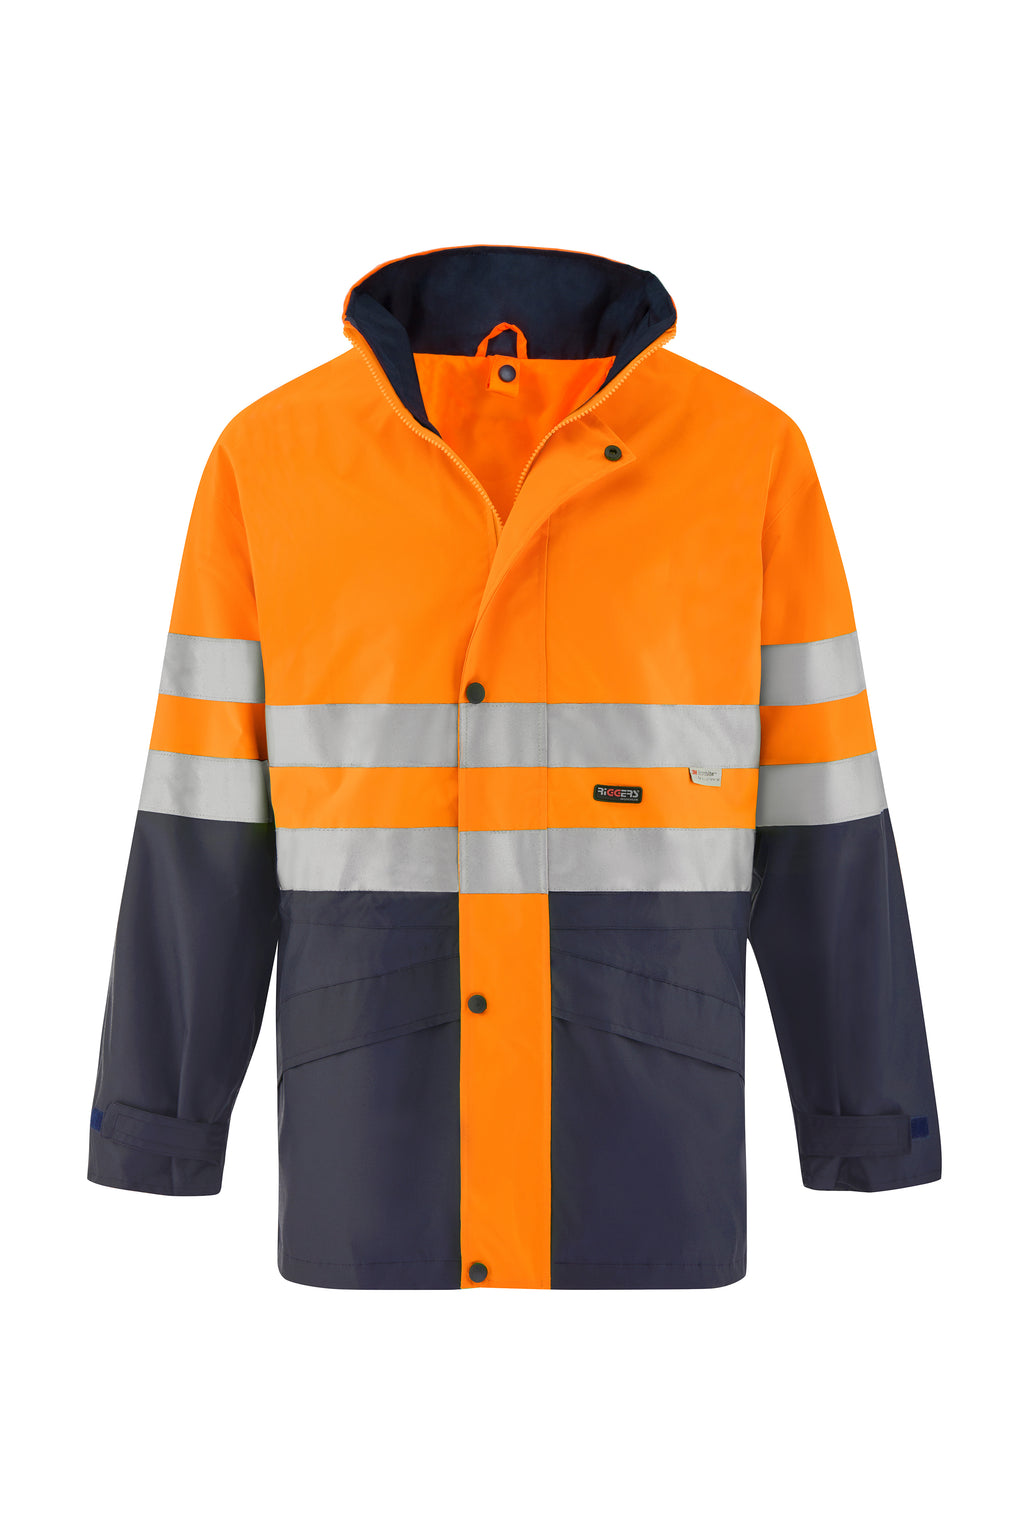 SAFETY JACKET (HOOP REFLECTIVE - TWO TONE)-Riggers Online Store